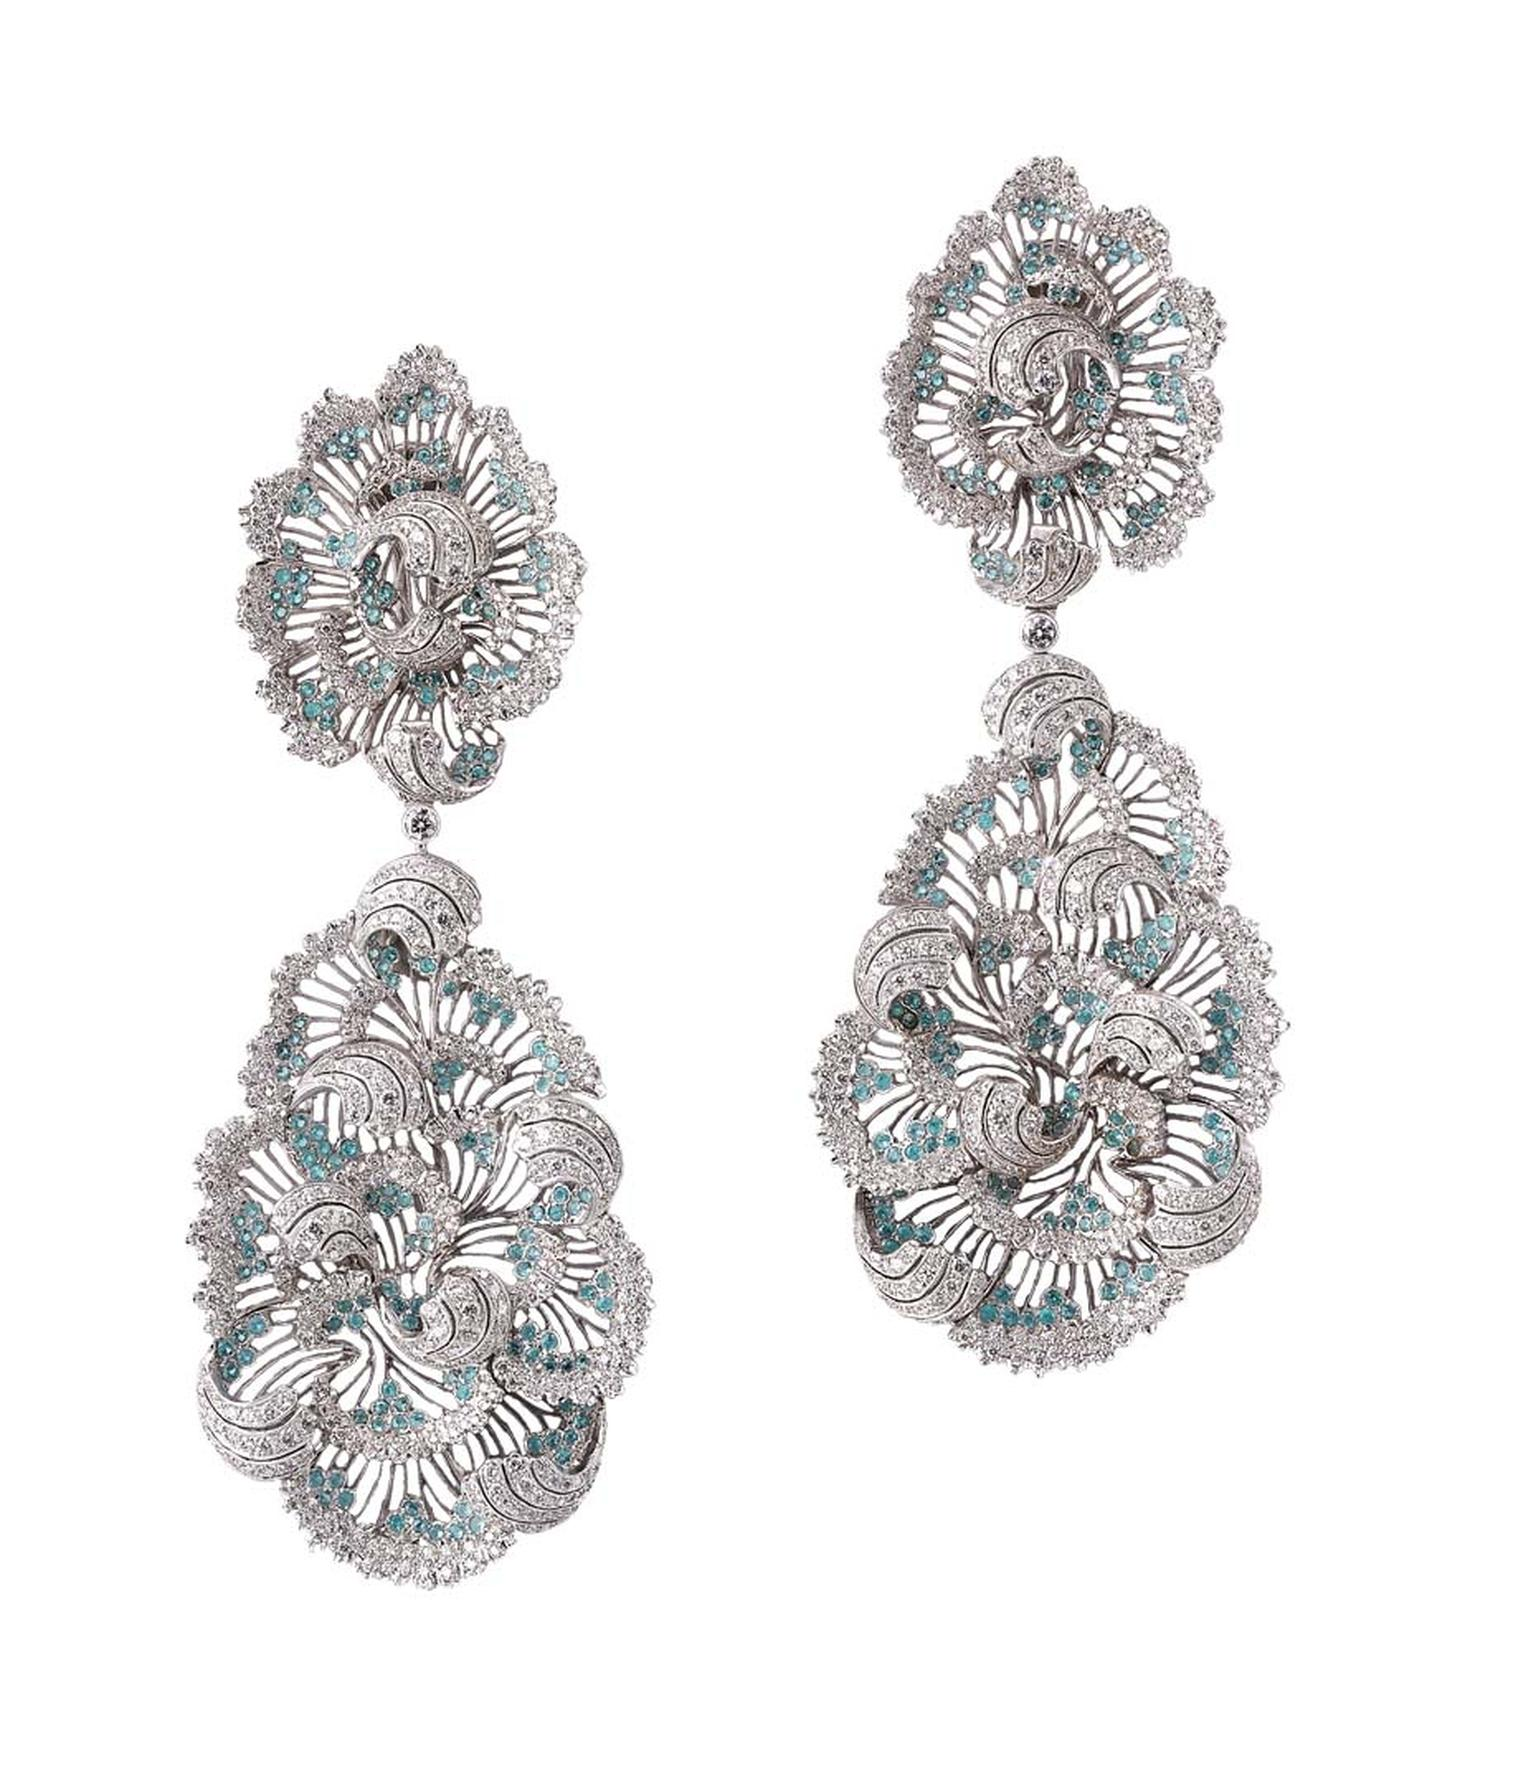 The complex design of Buccellati's white gold pendant earrings stays true to its enchanting style, infusing elegant curls with 1,066 round brilliant-cut diamonds and 354 Paraíba tourmalines.